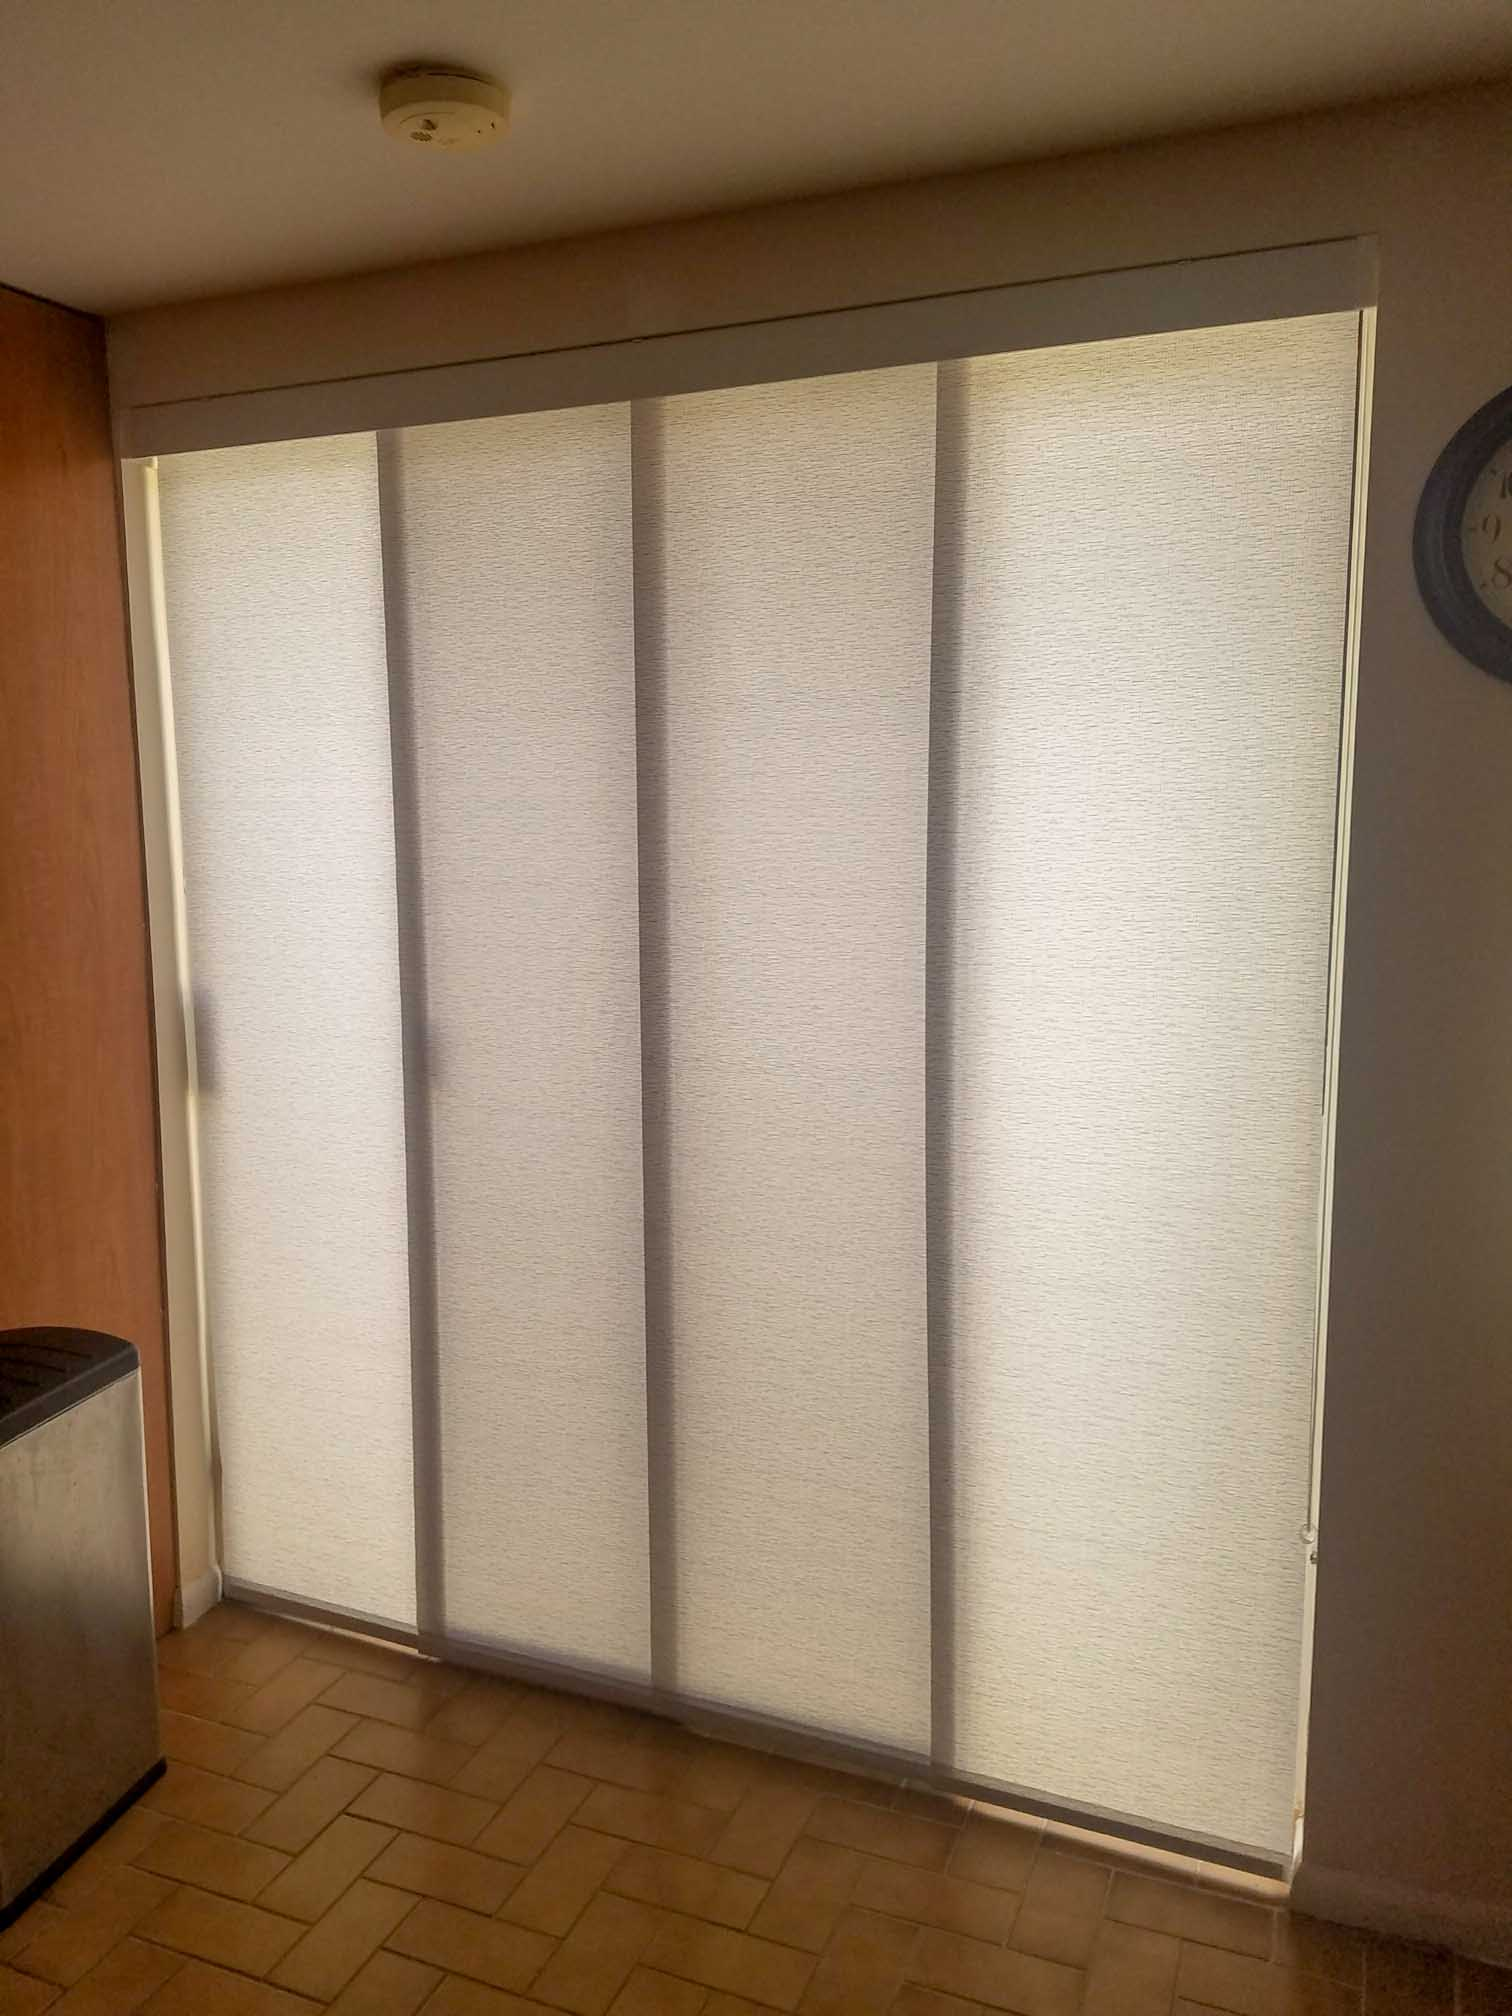 sliding panel curtains gallery SLIDING PANEL CURTAINS GALLERY 20180127 142331